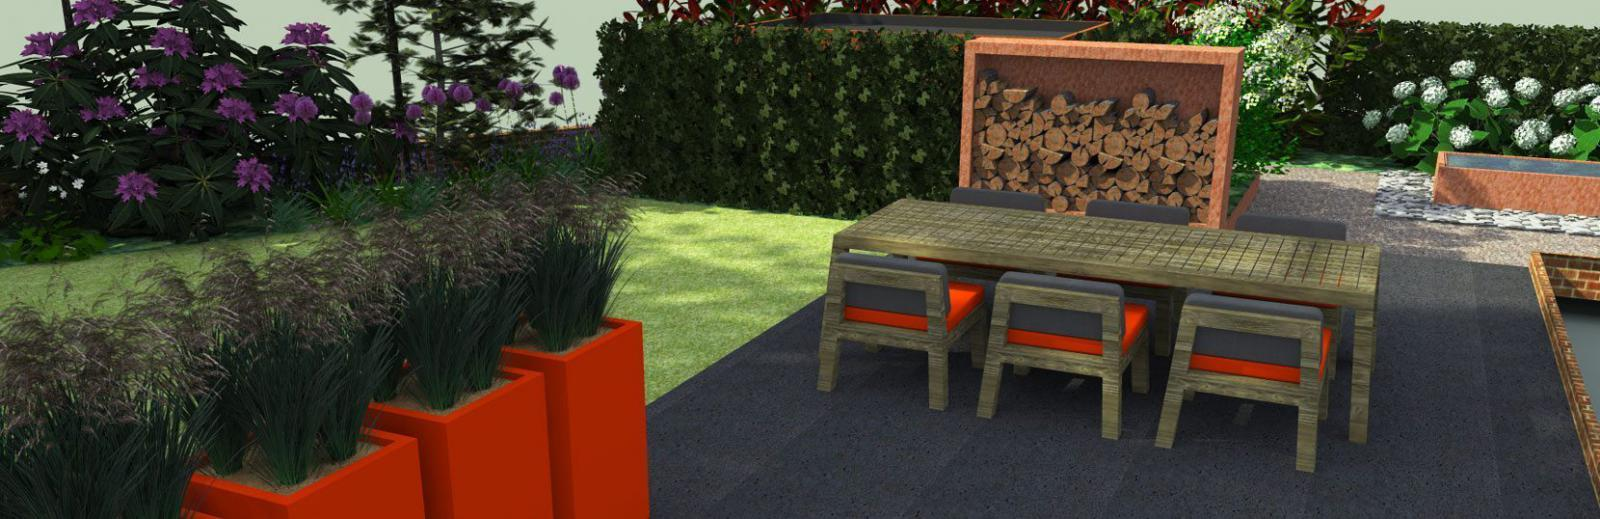 Your garden in 3D design